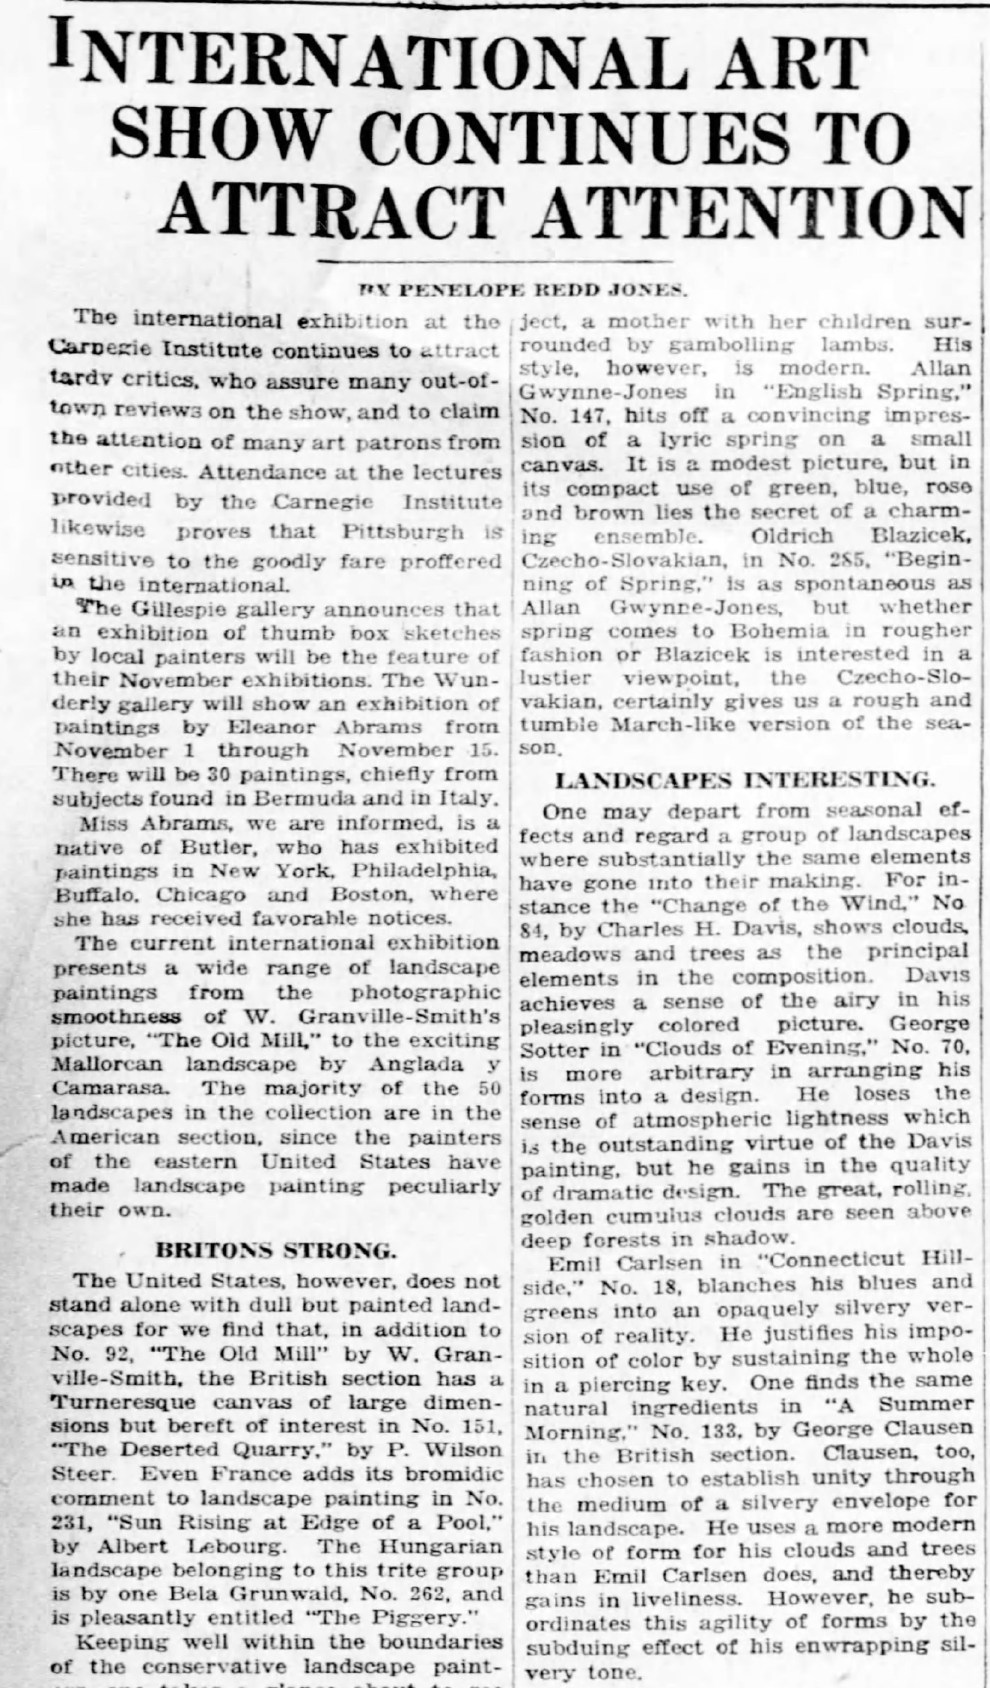 """Pittsburgh Daily Post, Pittsburgh, PA, """"International art show continues to attract attention"""" by Penelope Redd Jones, Sunday, October 31, 1926, page 60, not illustrated"""